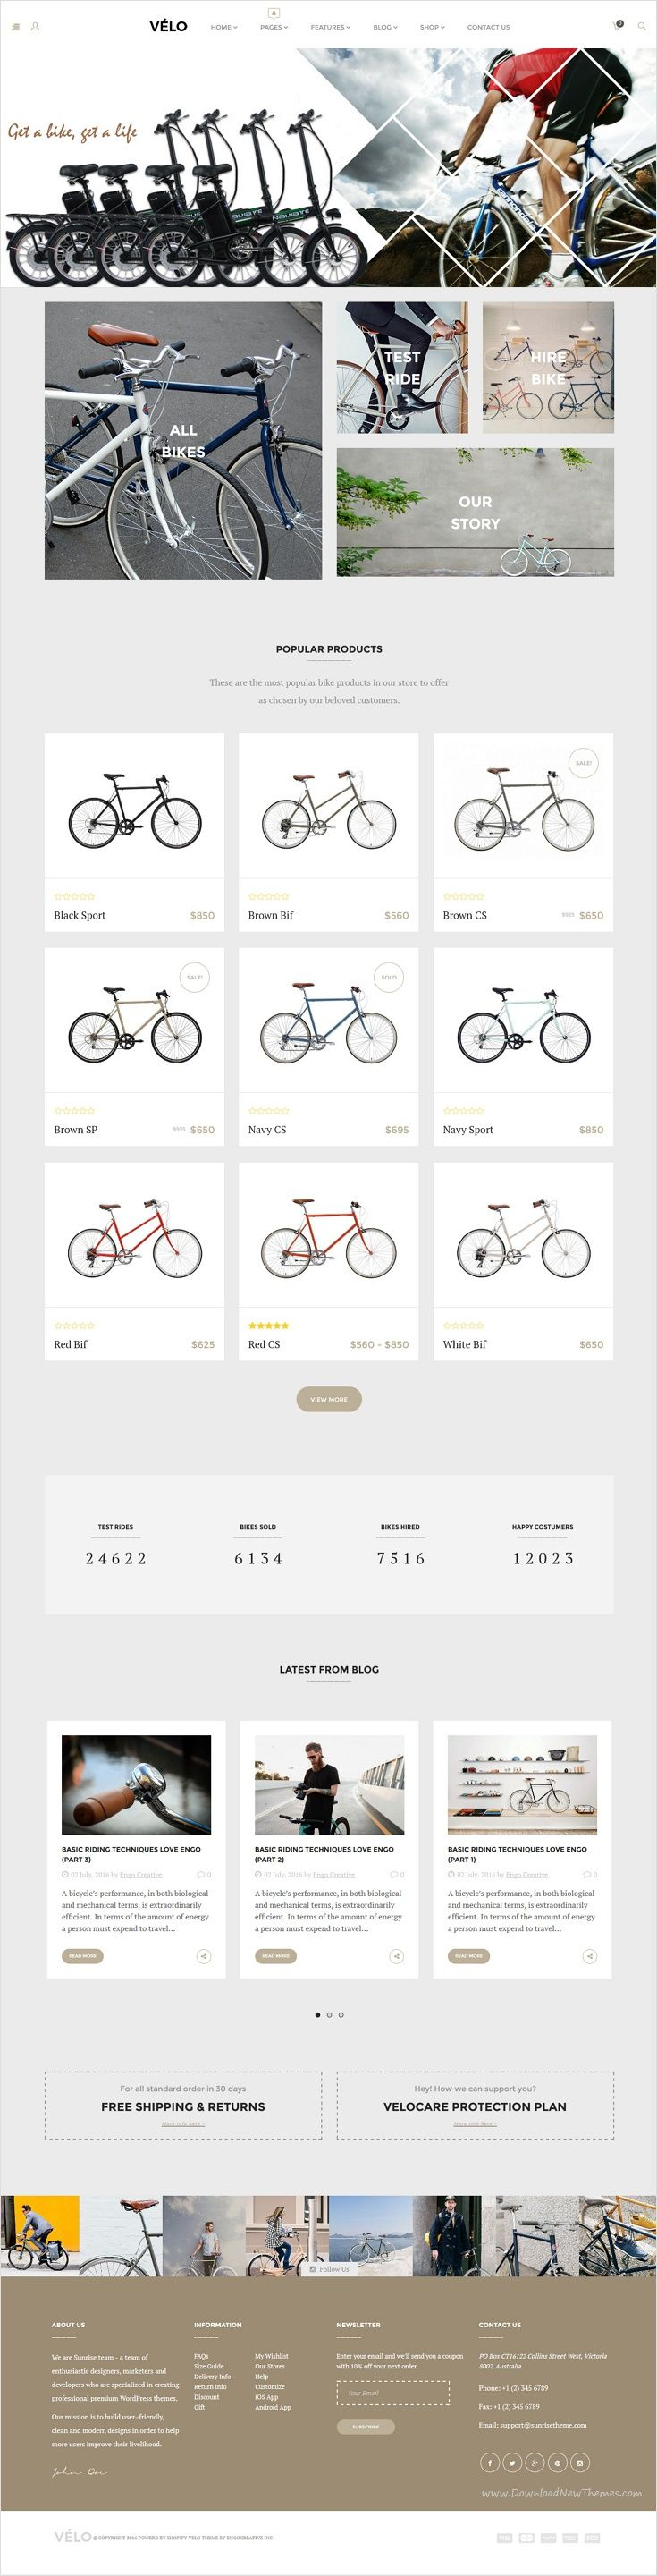 Velo is beautifully design responsive #Shopify theme for multipurpose #cycle, #bike #shop eCommerce website with 3 unique homepage layouts download now➩ https://themeforest.net/item/velo-bike-store-responsive-shopify-theme/17236615?ref=Datasata